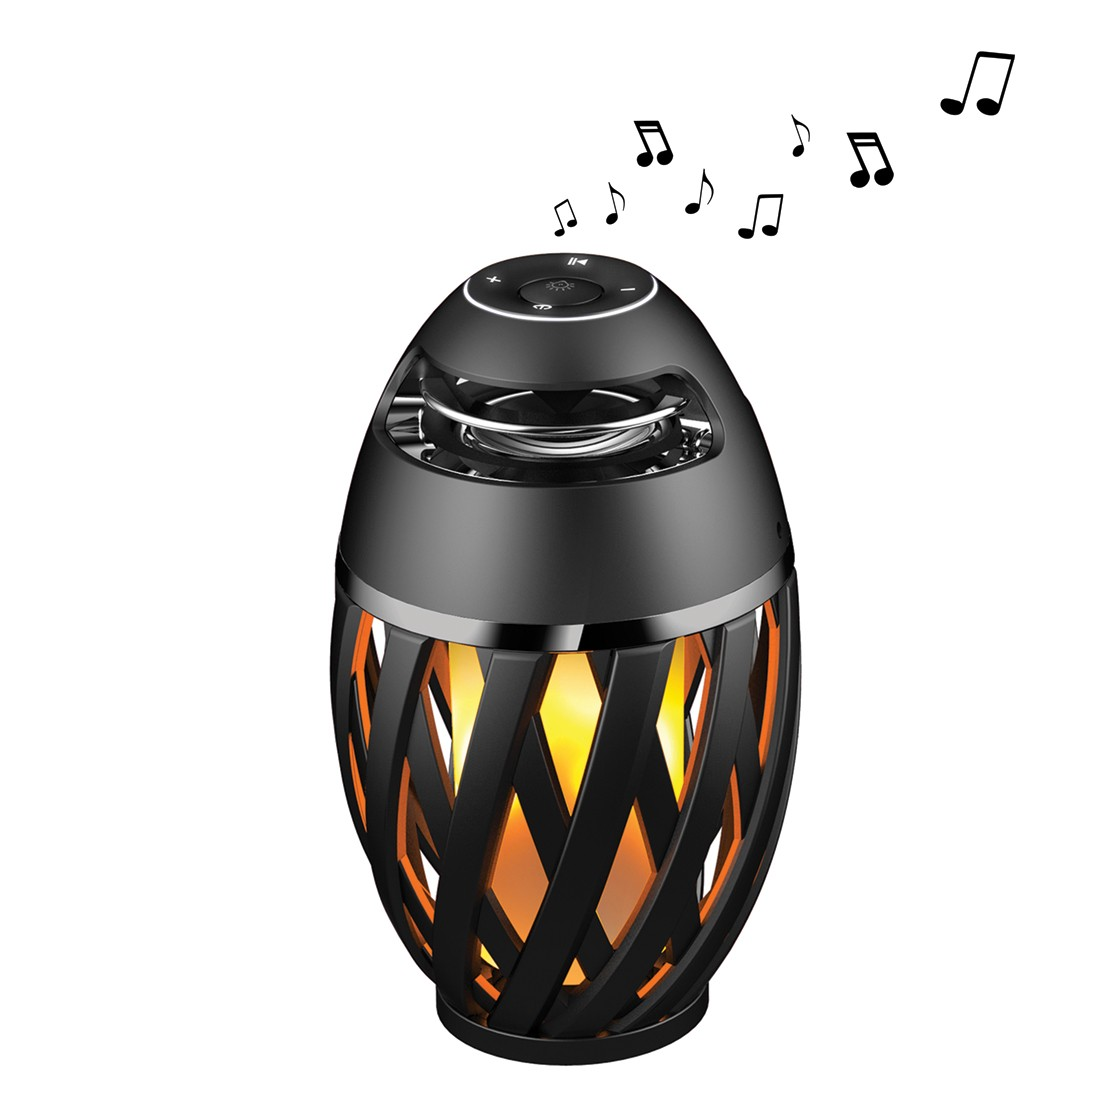 Flame Effect Atmosphere LED & Bluetooth Speaker